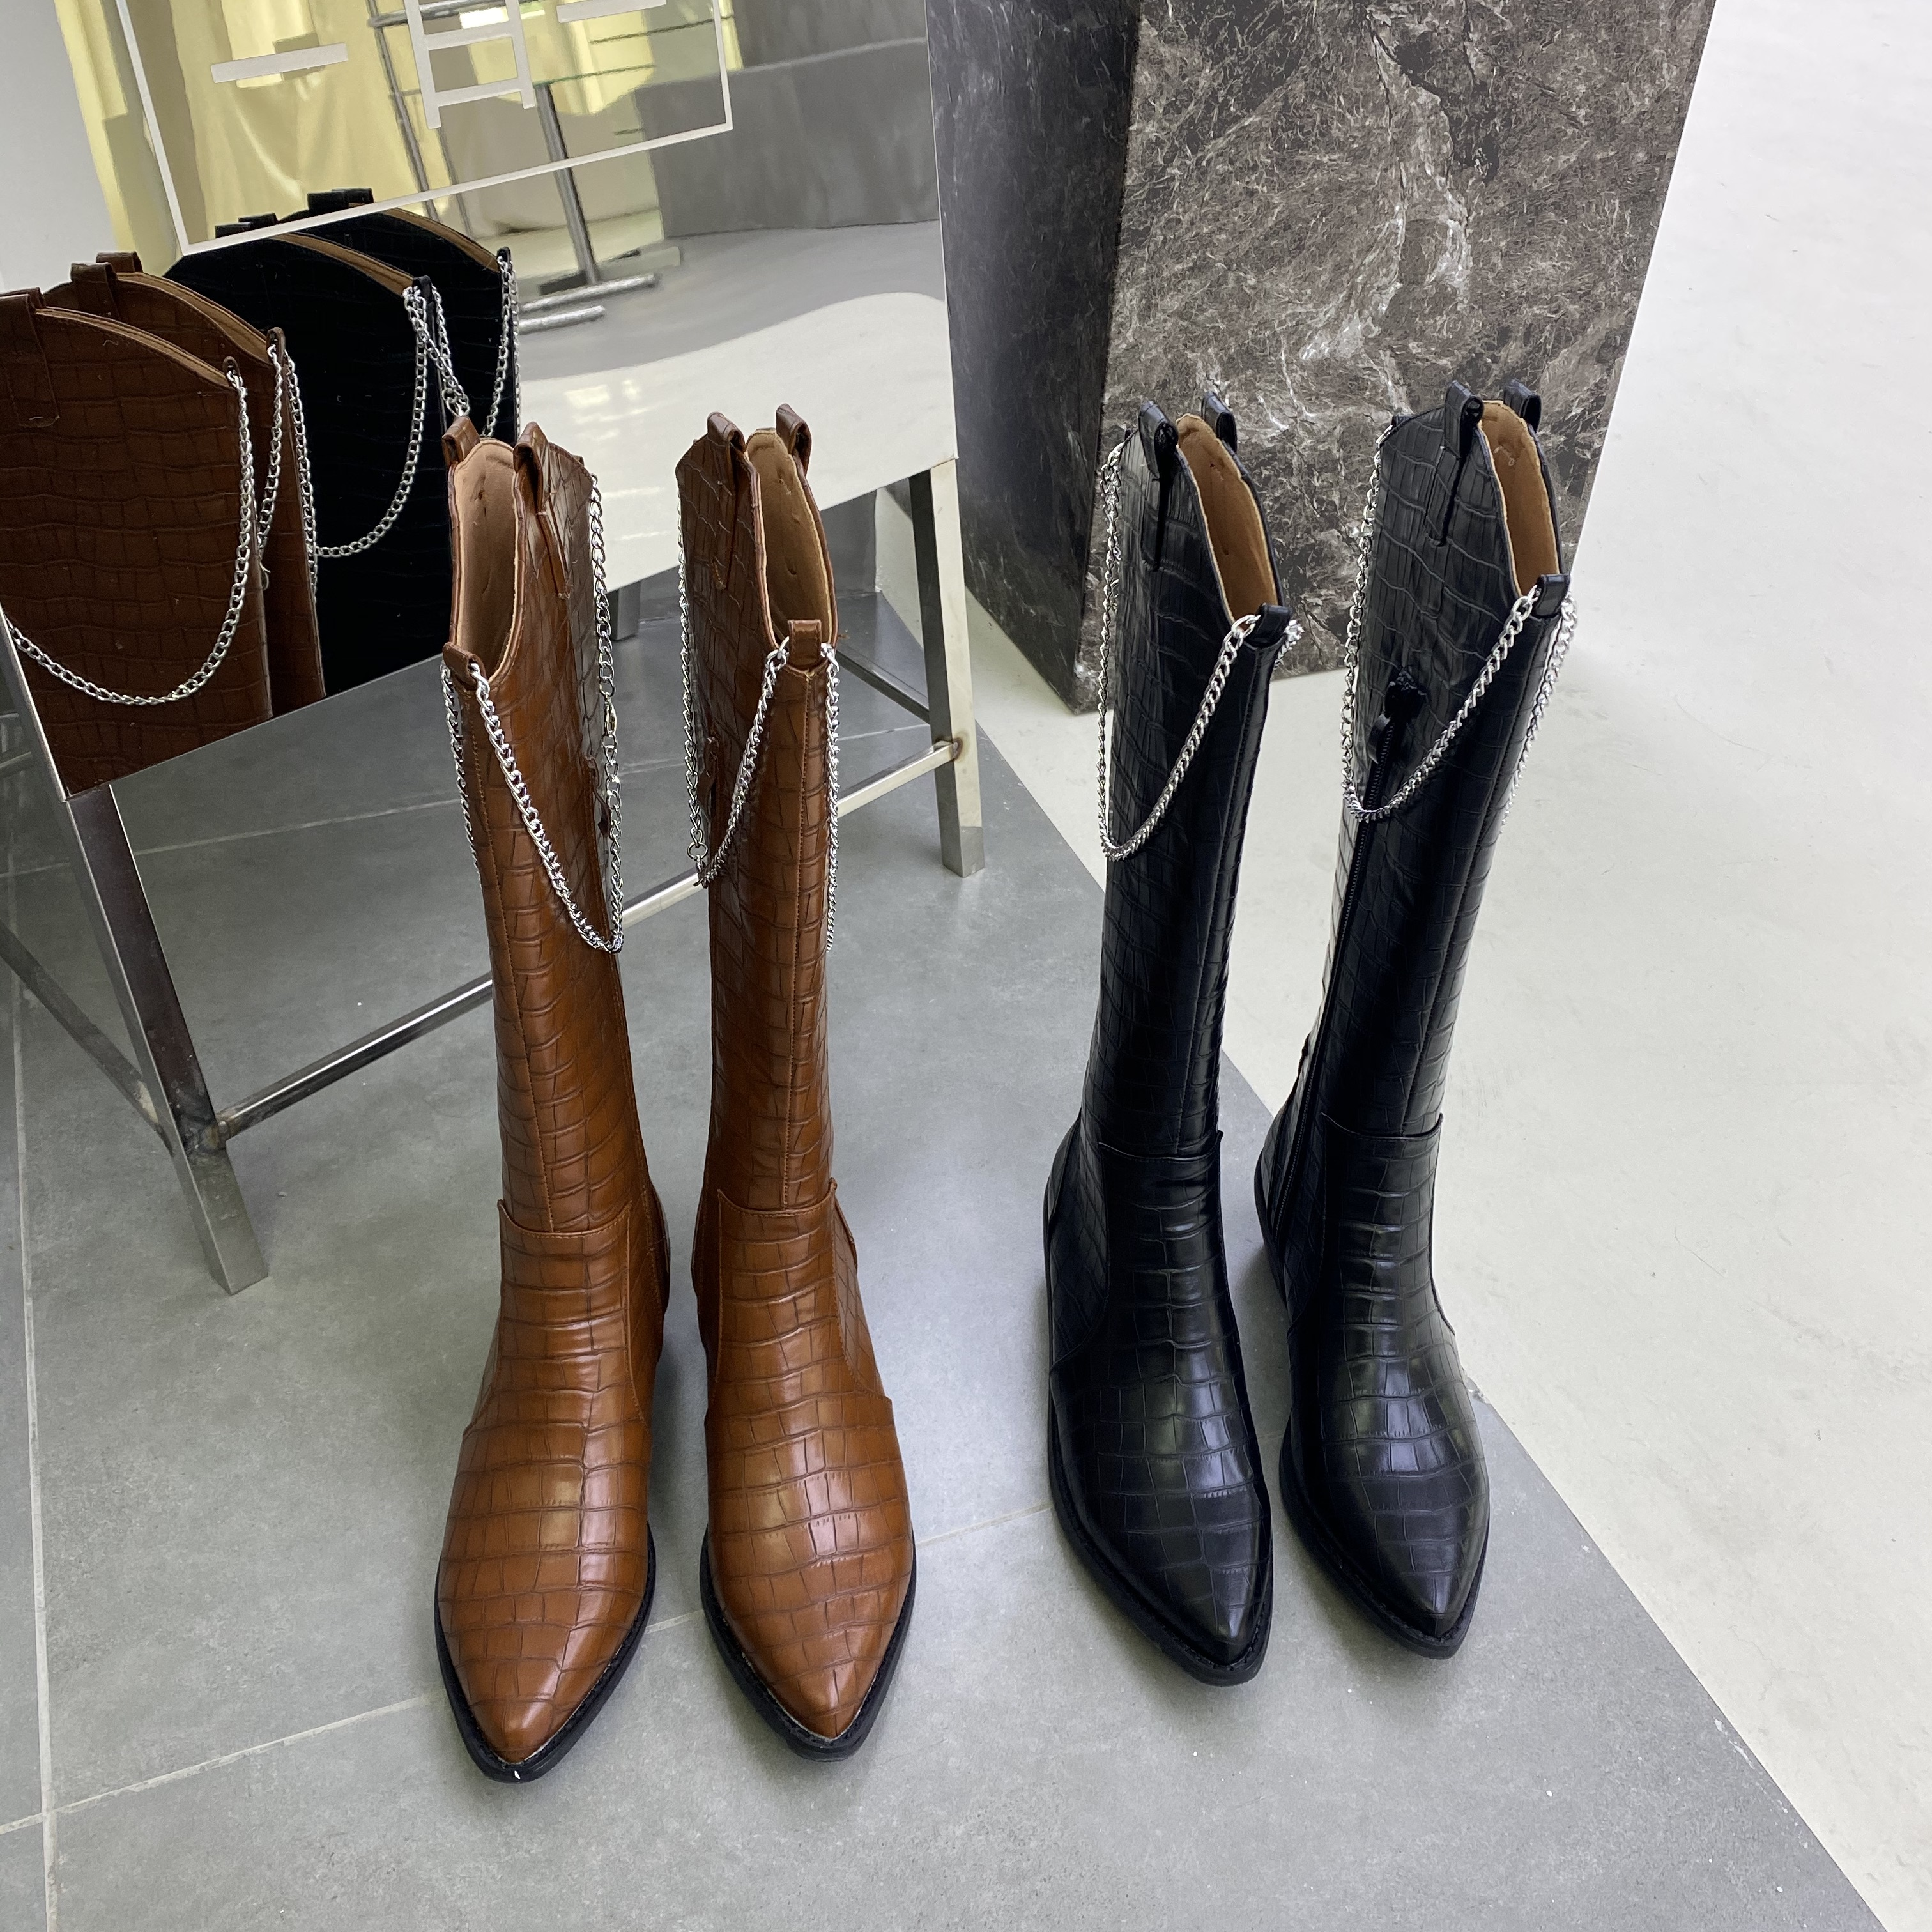 New European and American fashion pointed coarse heel stone chain Knights boots in fall / winter 2020 35-39